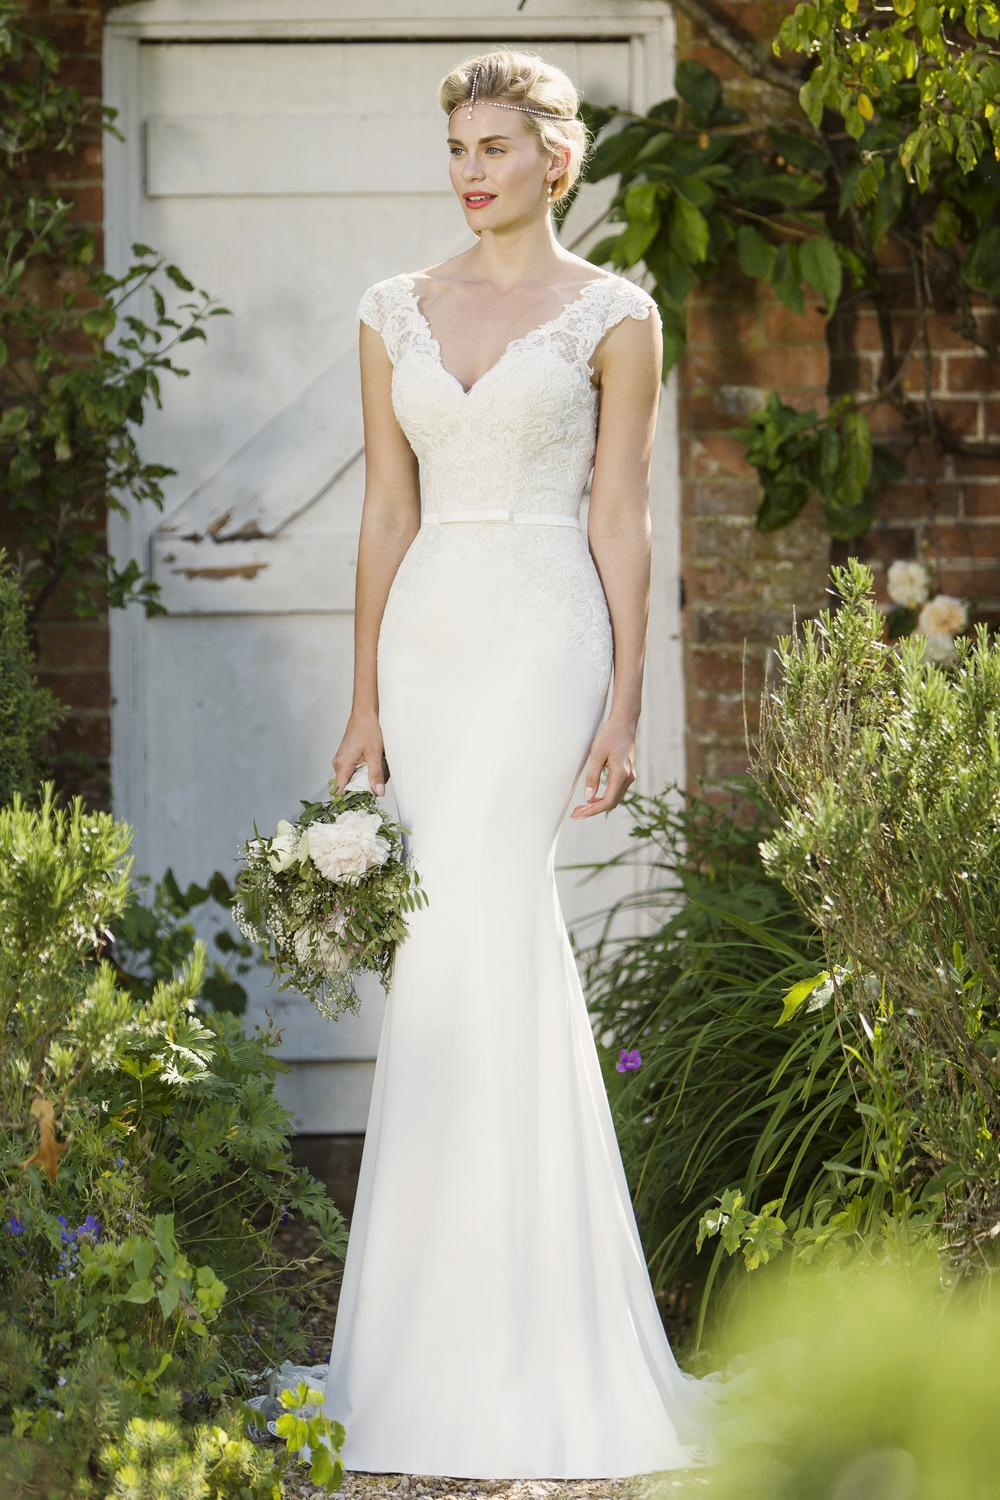 Awesome Brides And Gowns Derby Ideas - Best Evening Gown Inspiration ...